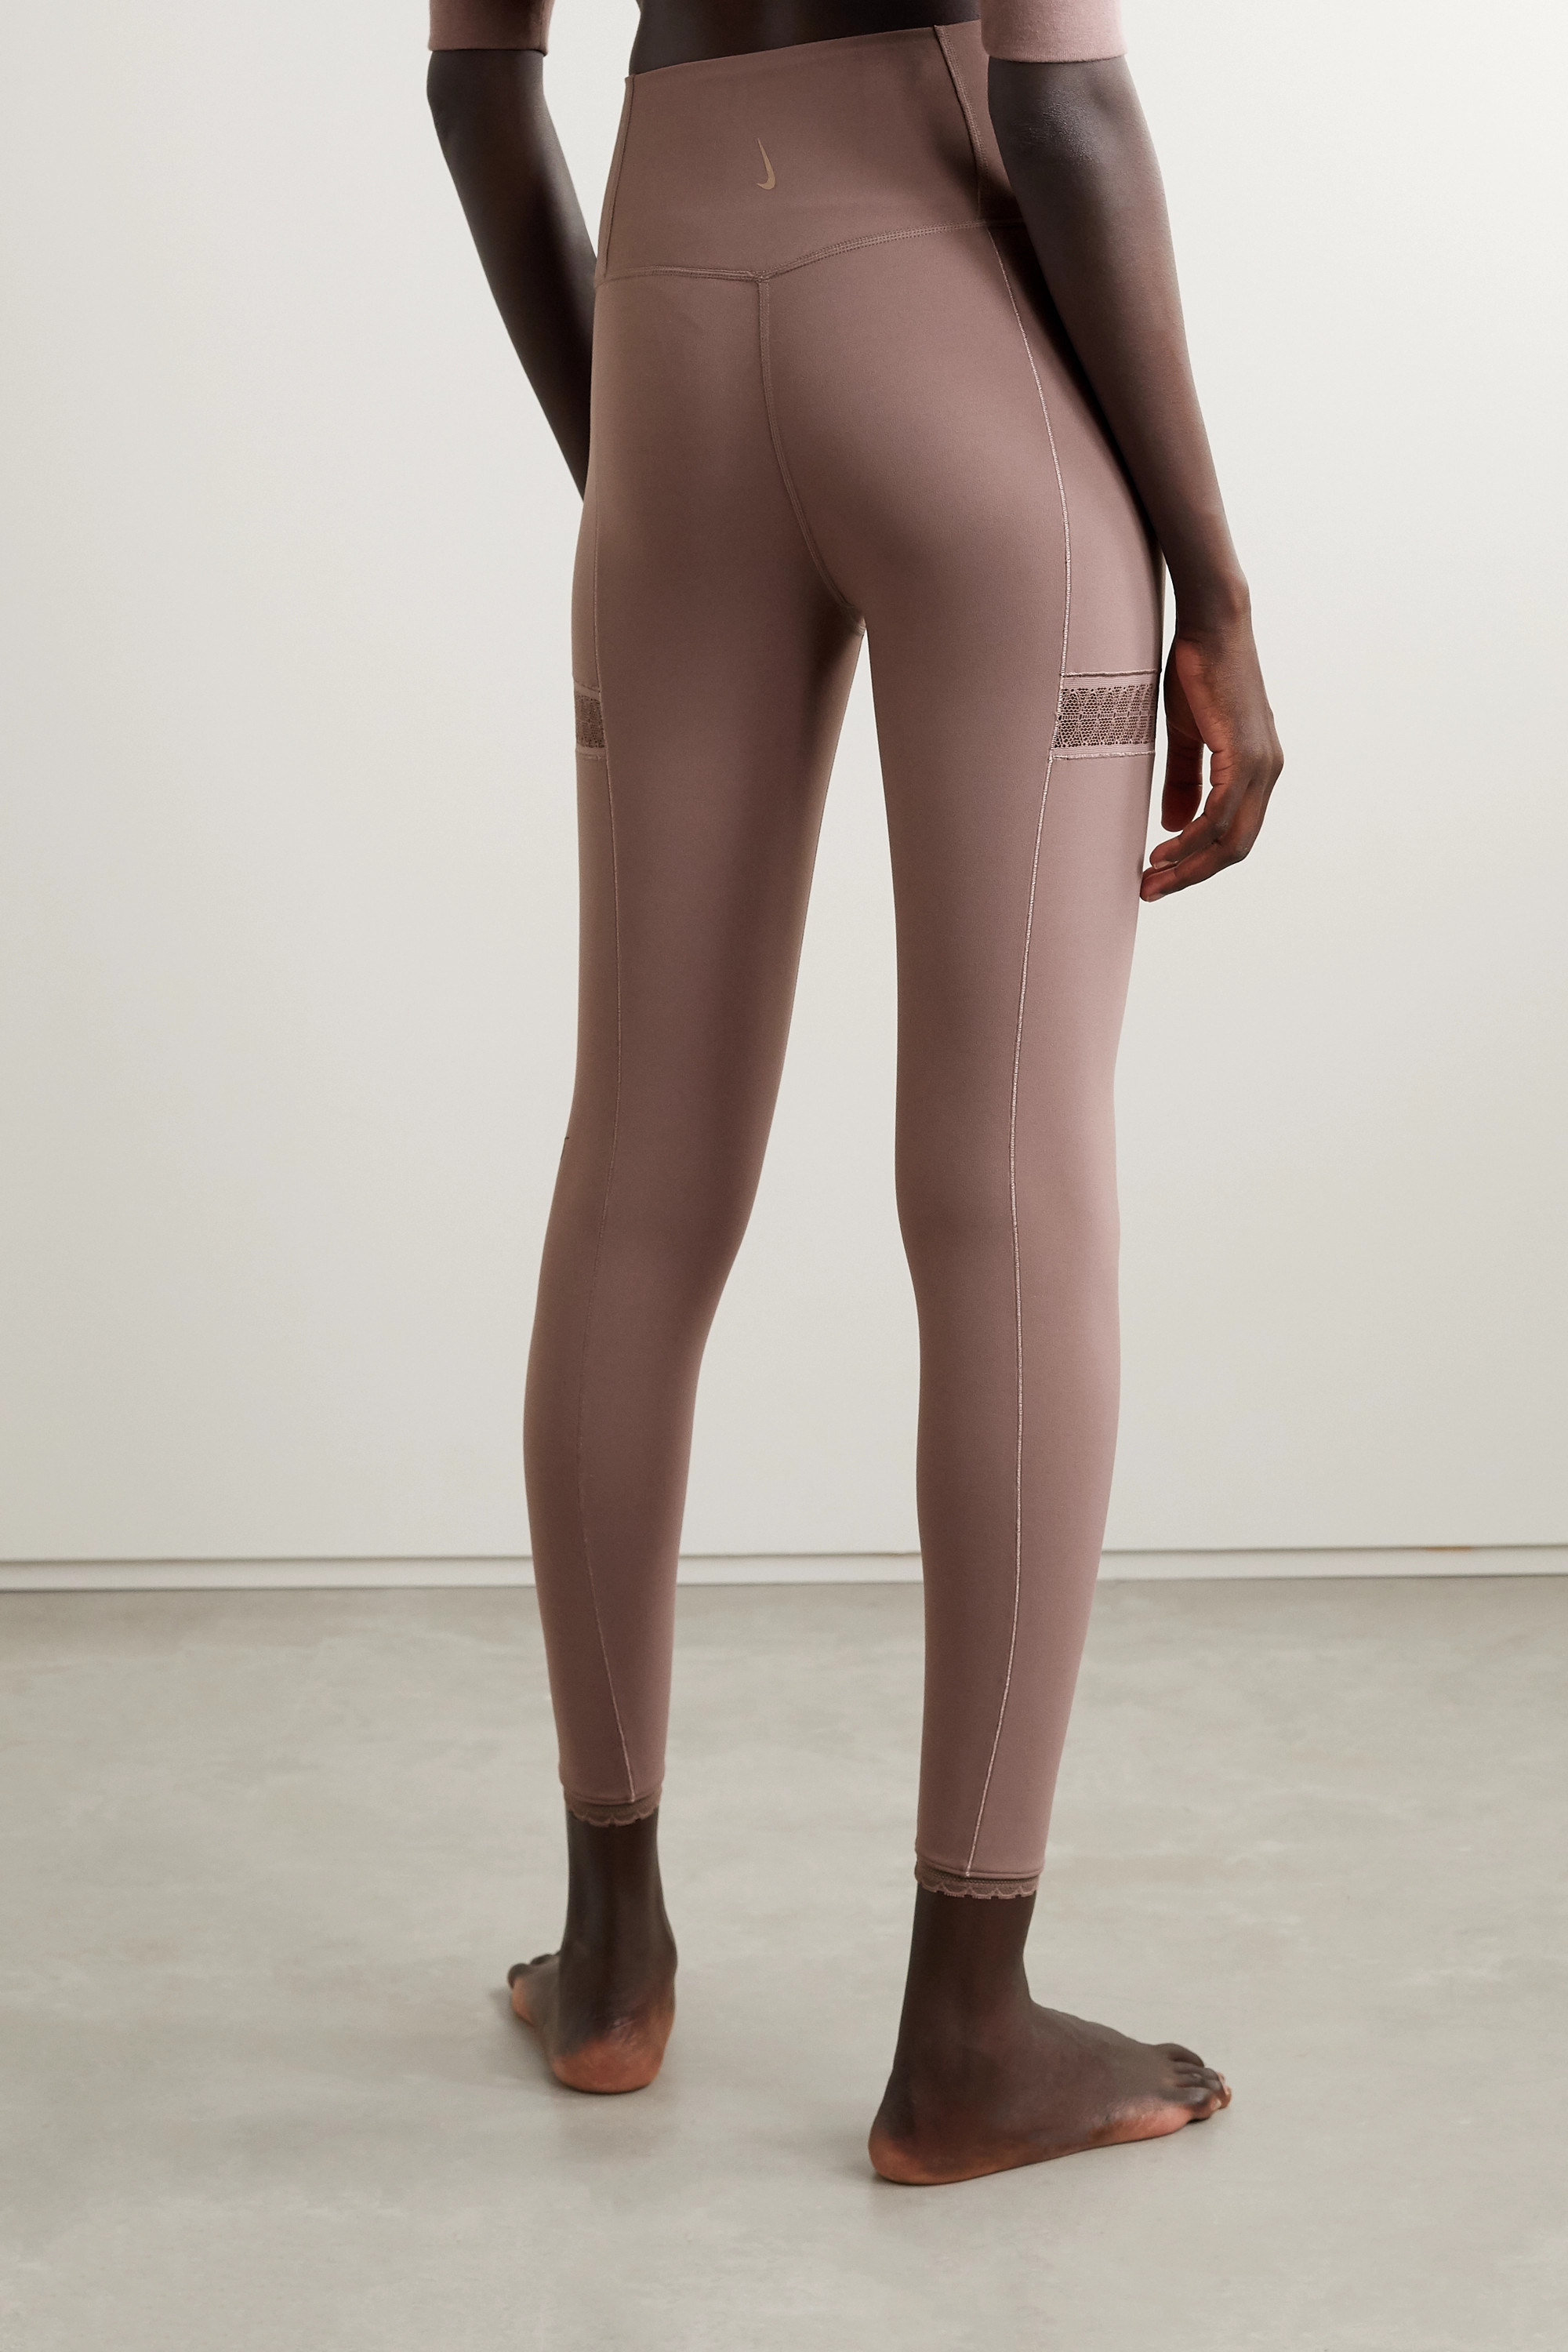 NIKE Yoga Infinalon lace-trimmed Dri-FIT leggings